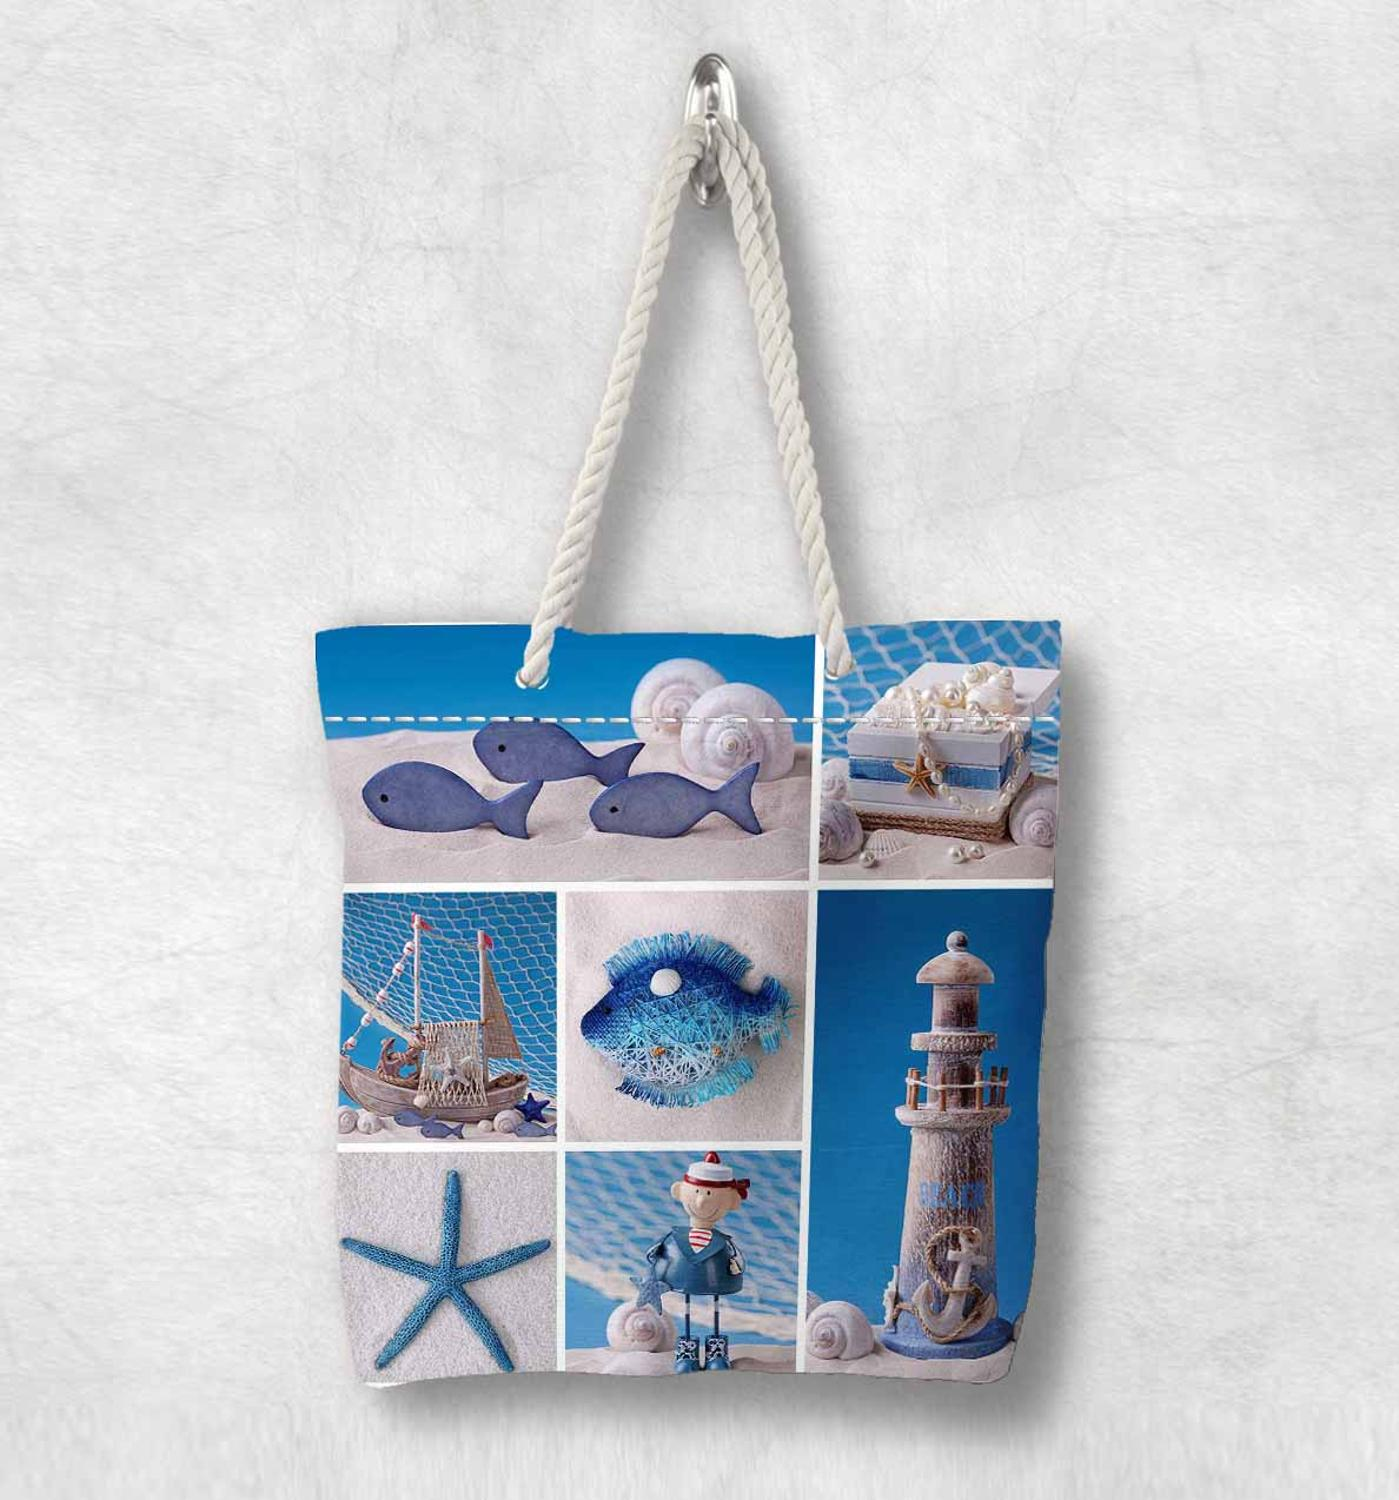 Else Blue Tropical Sea Shells Sea Stars New Fashion White Rope Handle Canvas Bag Cotton Canvas Zippered Tote Bag Shoulder Bag